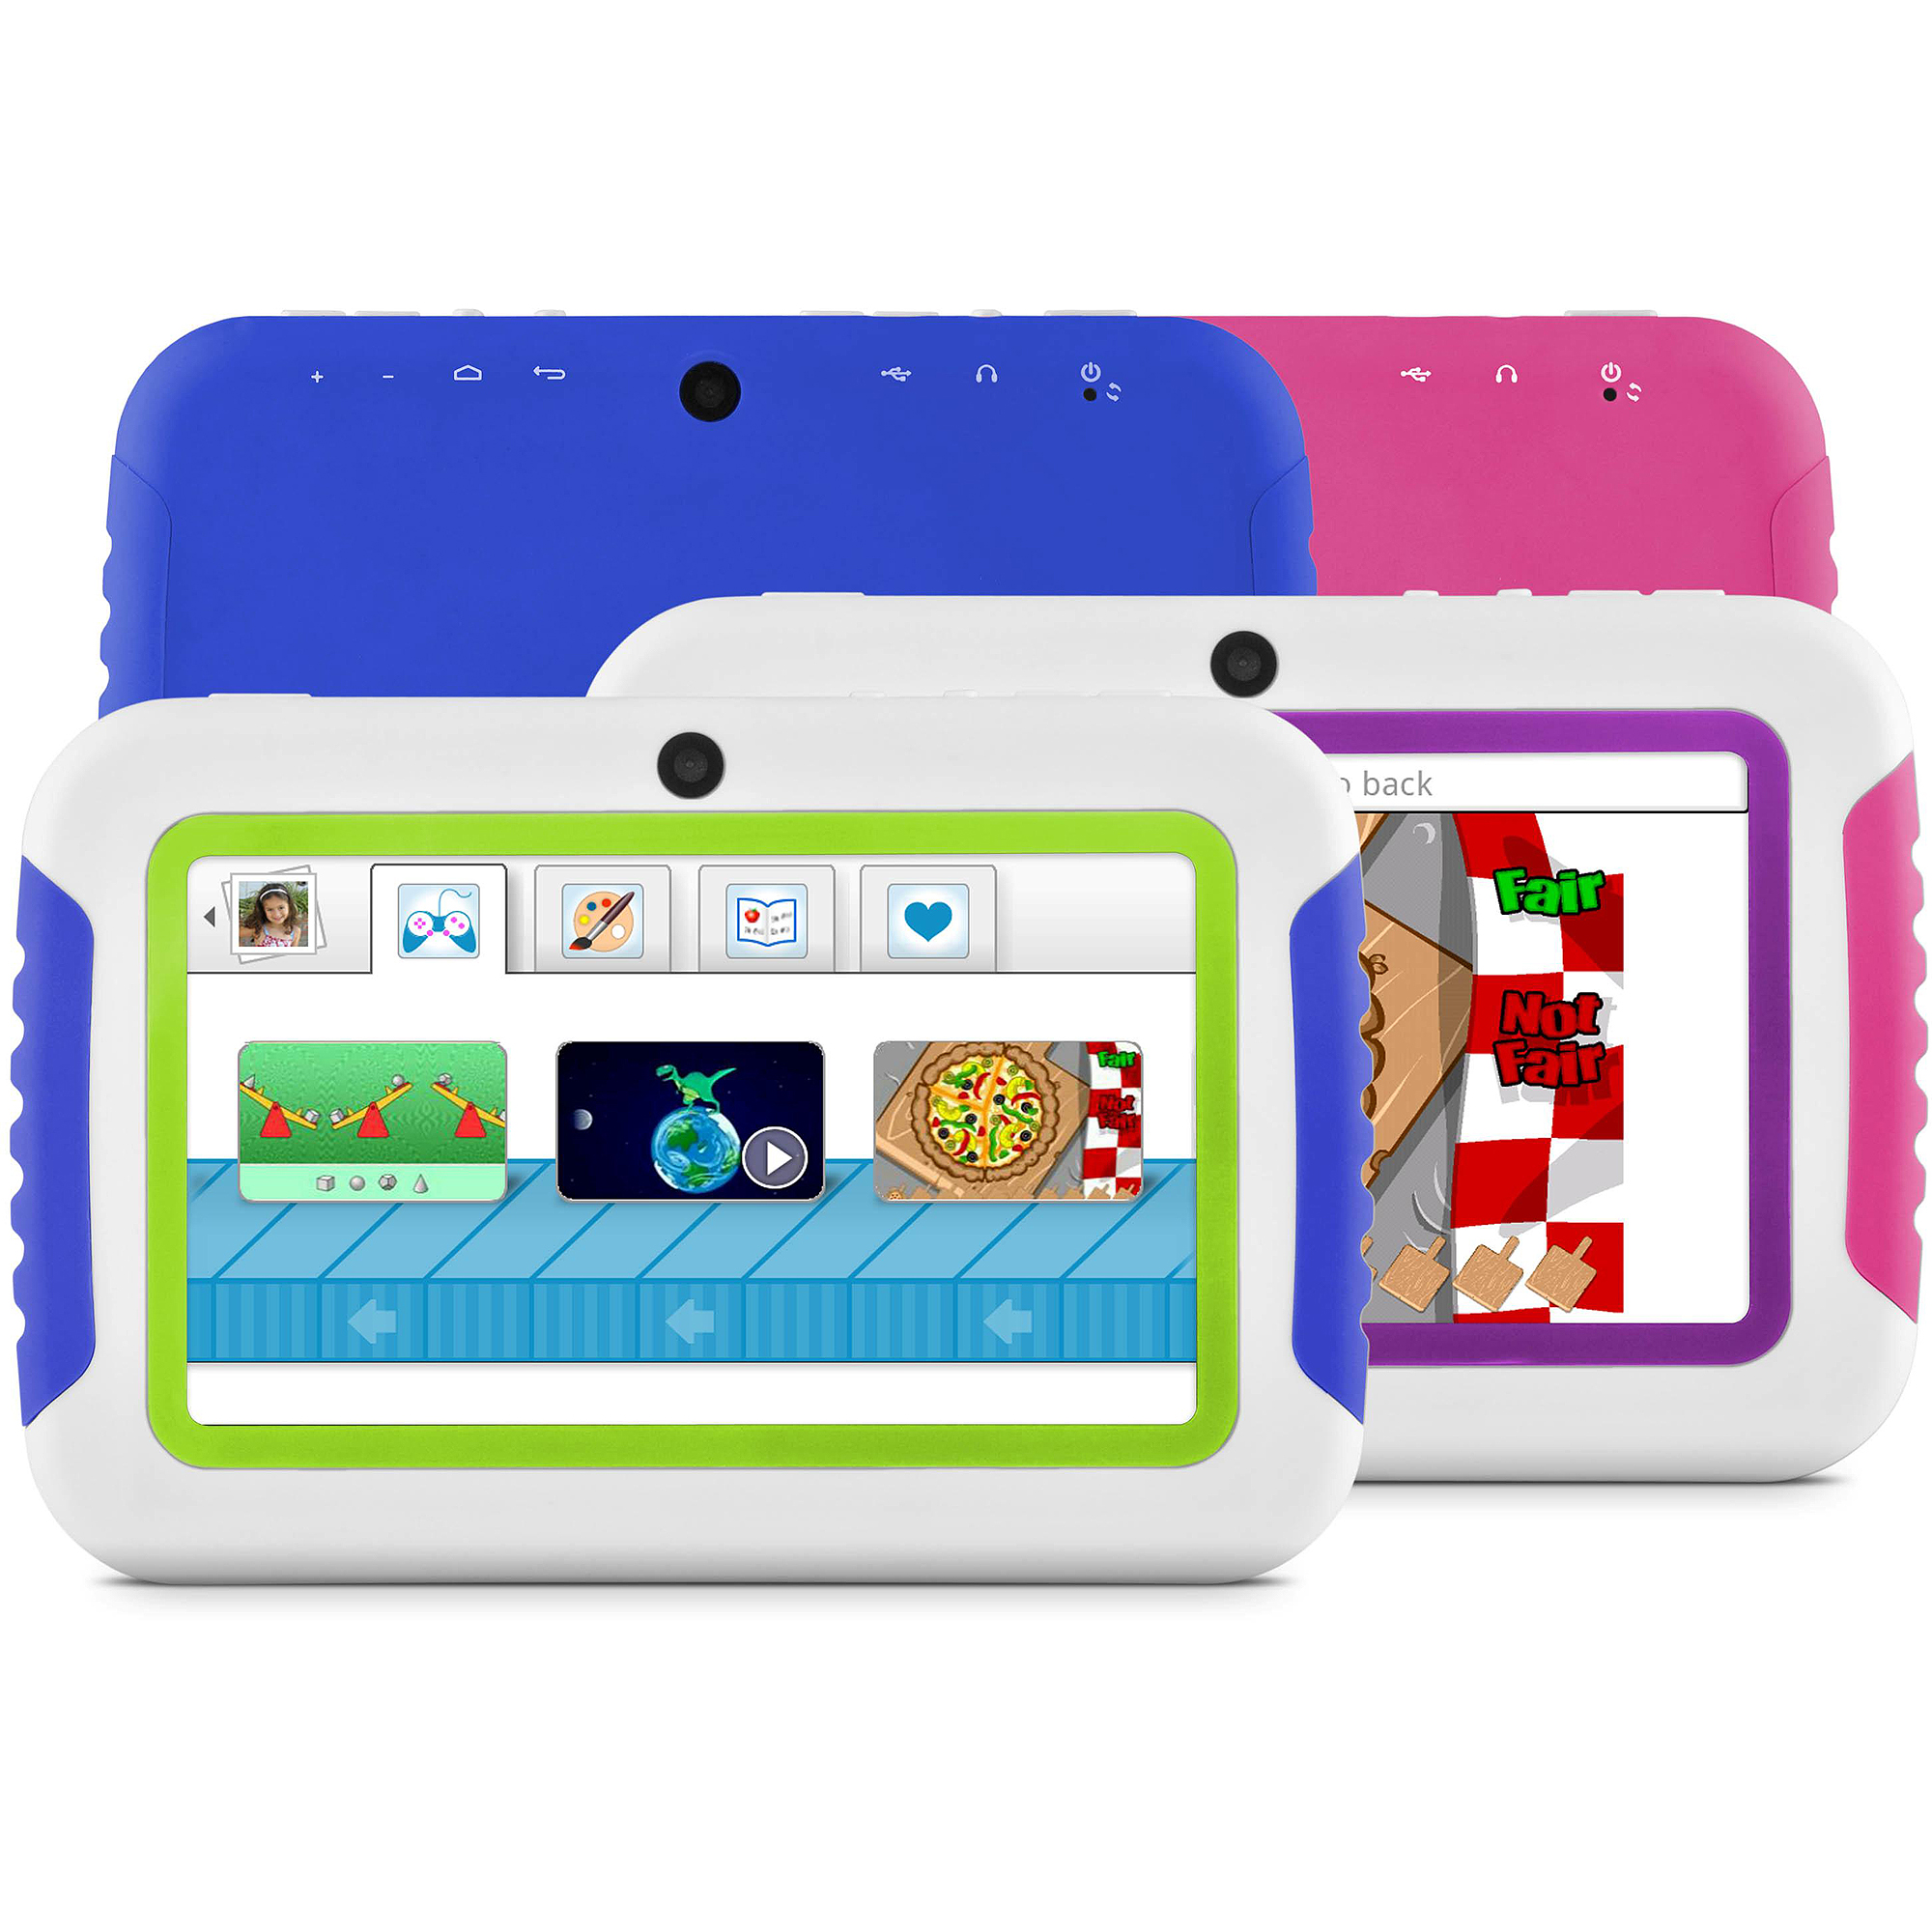 "Ematic FunTab Mini with WiFi 4.3"" Touchscreen Tablet PC Featuring Android 4.0 (Ice Cream Sandwich) Operating System"